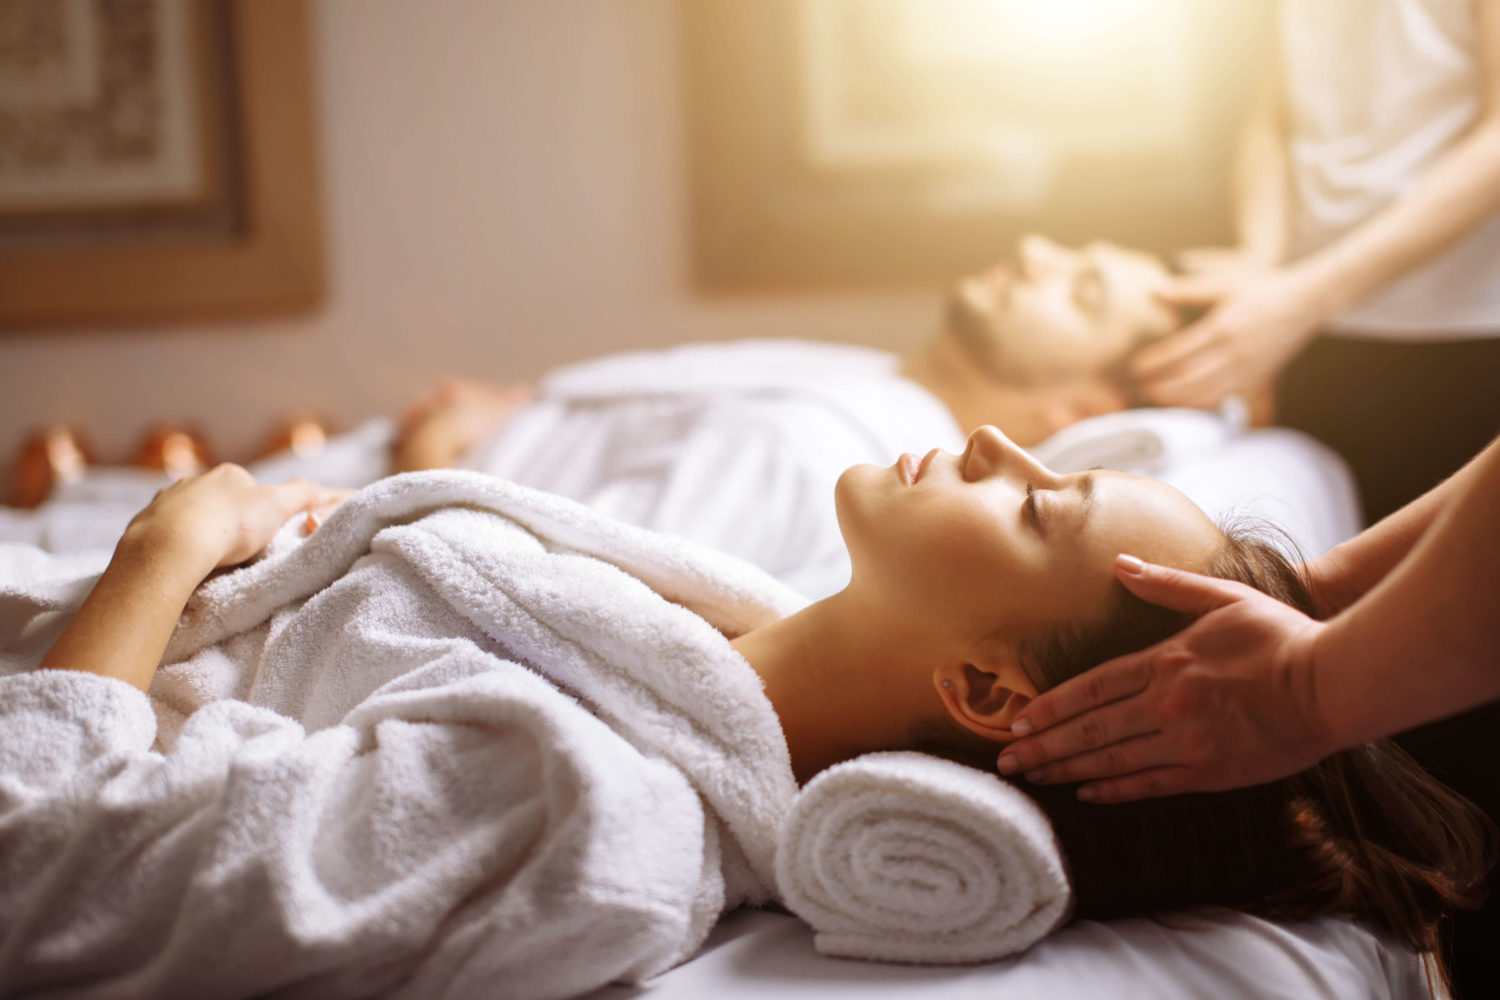 MassageTherapyFAQs-FloridaAcademy